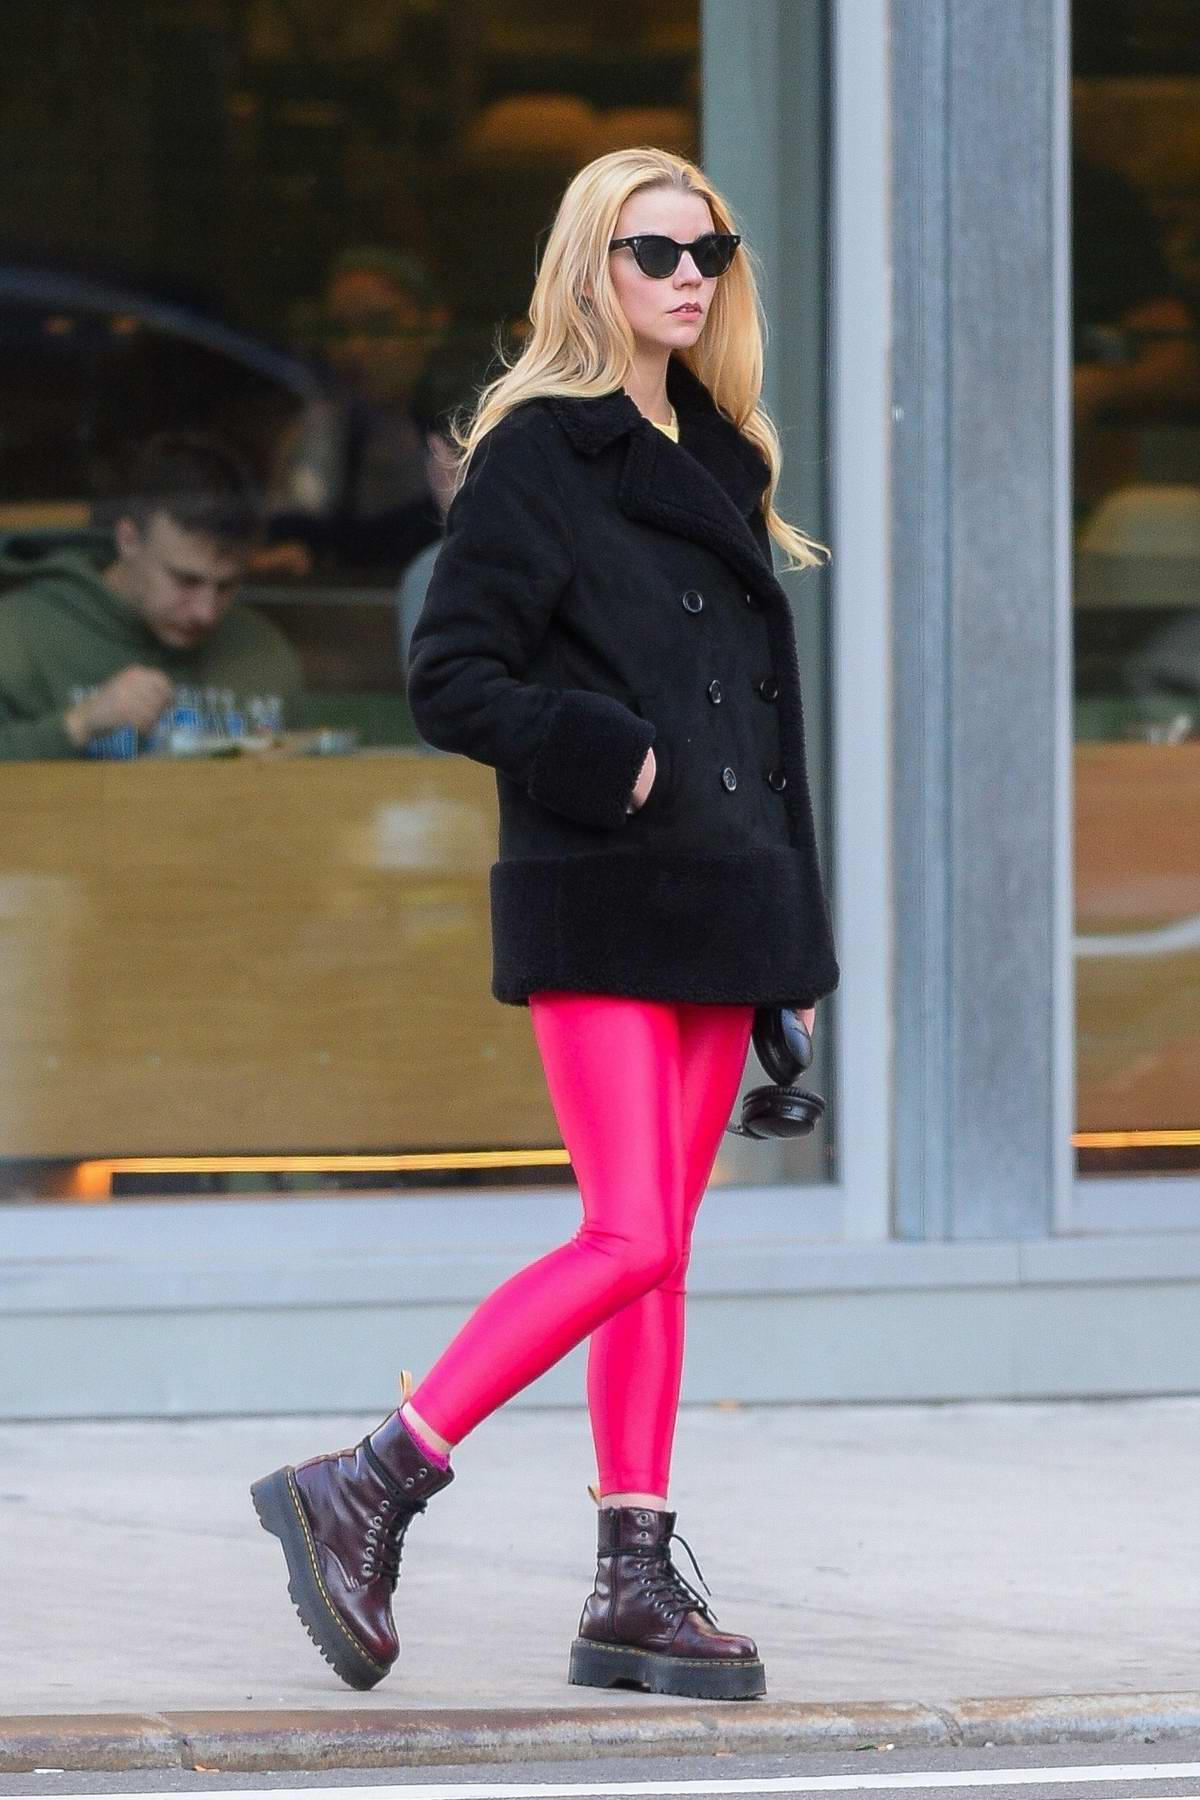 Anya Taylor-Joy sports hot pink leggings while out in New York City